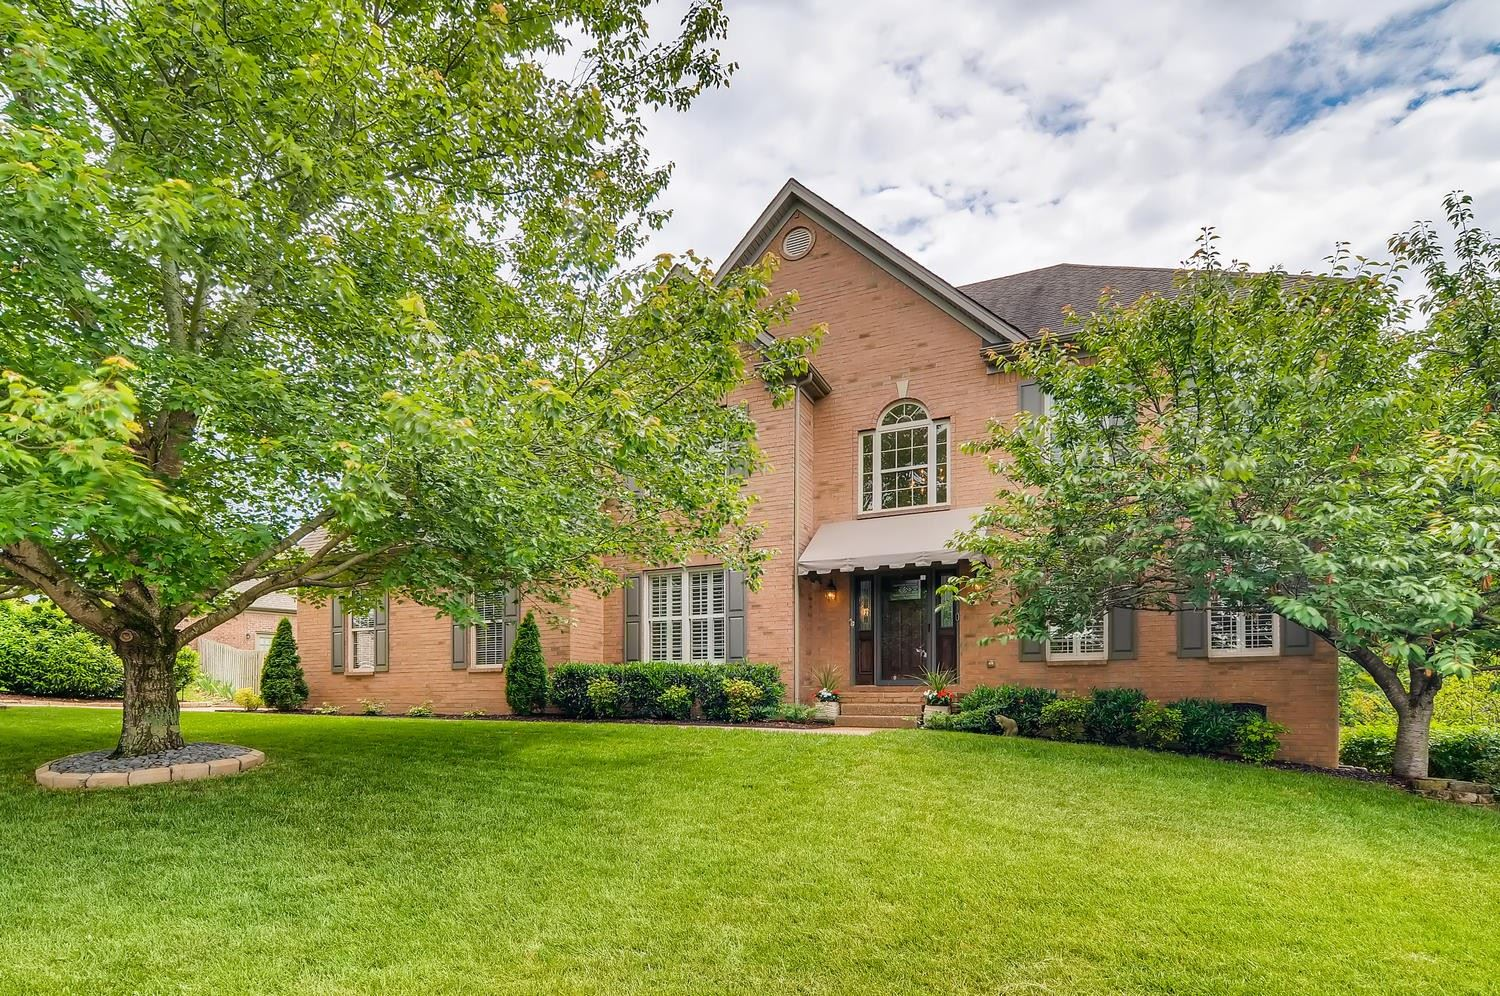 Photo of 5425 Brownstone Dr, Brentwood, TN 37027 (MLS # 2151813)